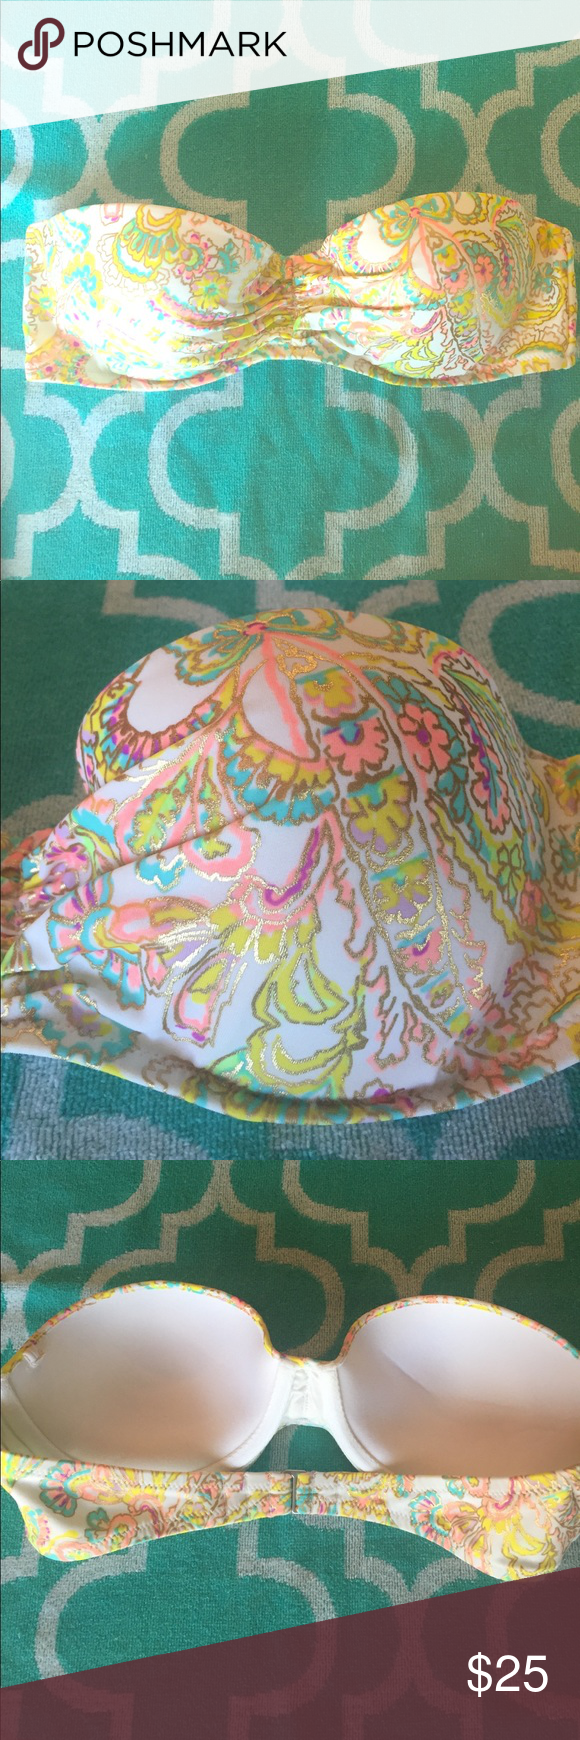 Gently Used Victoria's Secret Strapless Bikini Top Super cute and colorful paisley print Victoria's Secret Strapless underwire bikini top with gold metallic outline and pretty pops of coral, turquoise purple and yellow on a bright white background. This top does not have a tag for sizing, but I believe it is a 34B cup. I recall that it fit snug and I was a 34b-c in Victoria's Secret. The top comes with its straps and the cups have light padding for a slight push up. It is in beautiful…